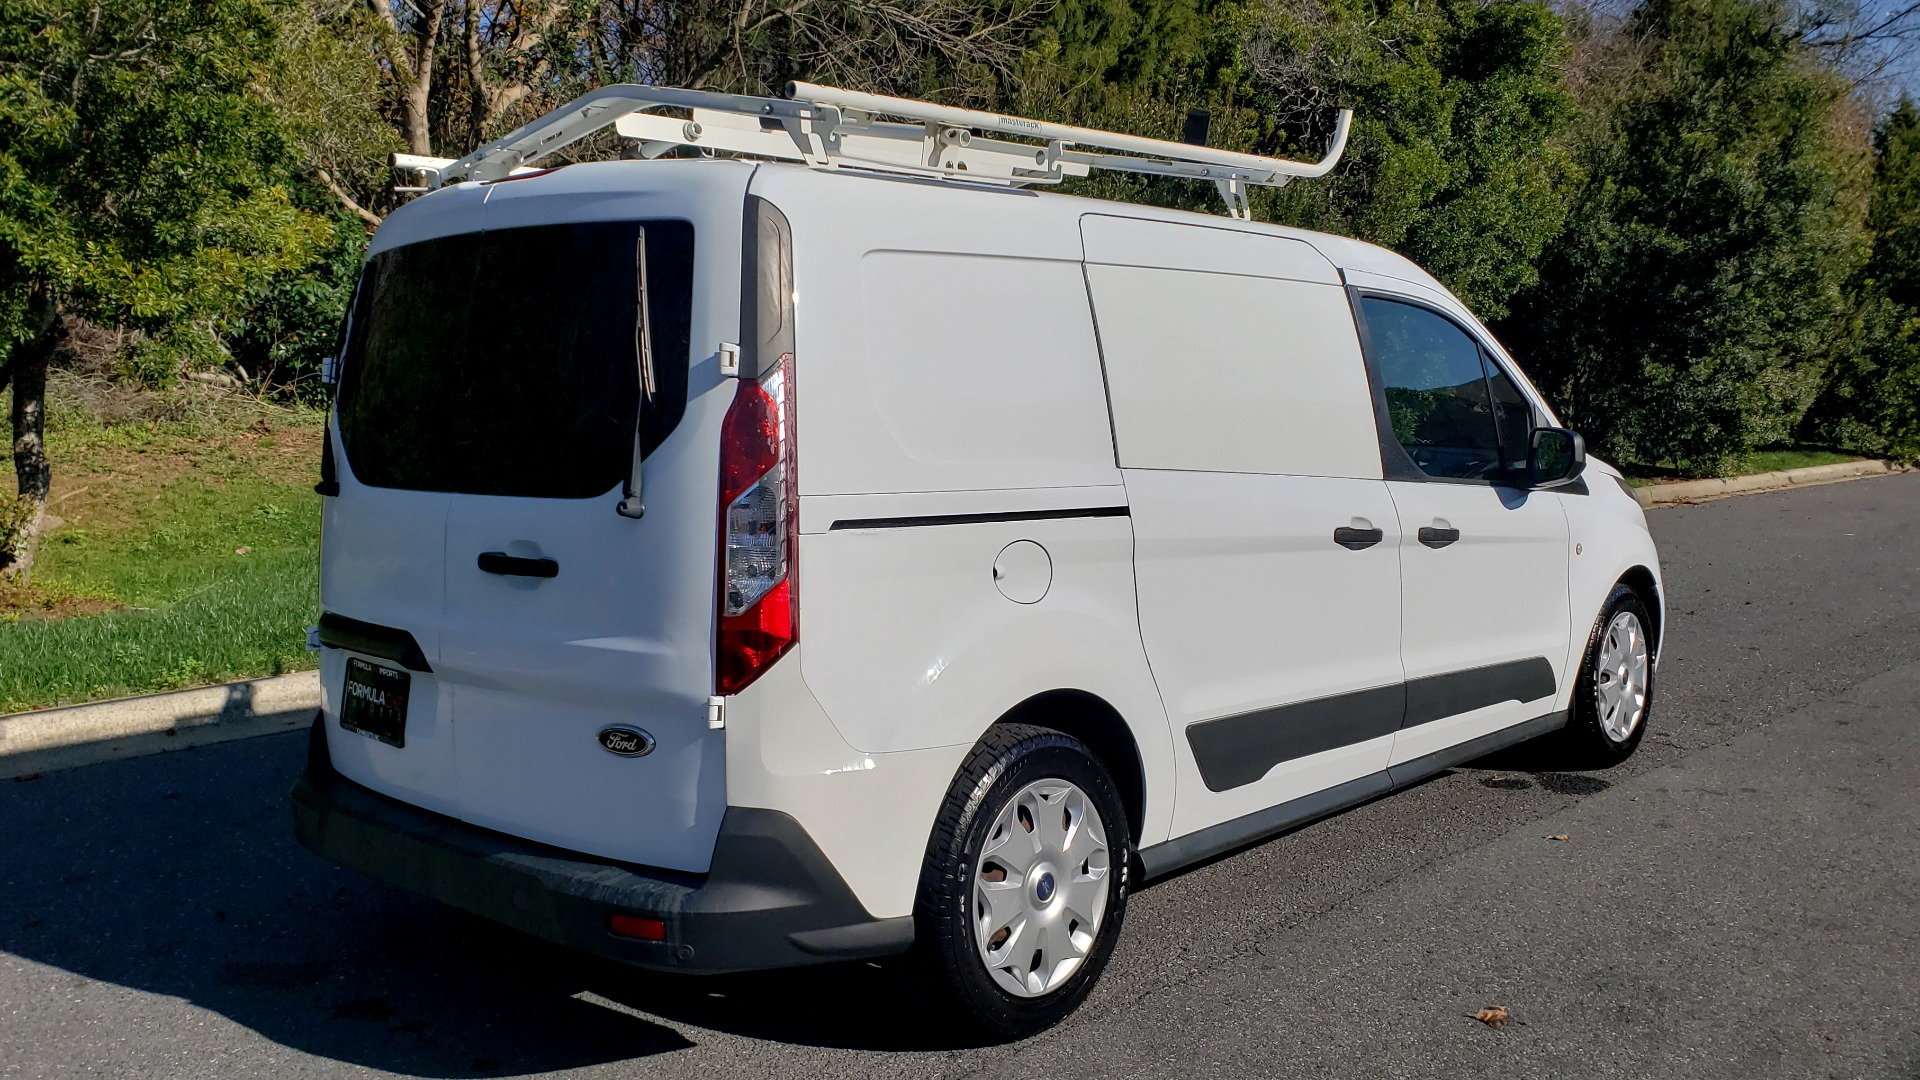 Used 2015 Ford TRANSIT CONNECT XLT CARGO VAN / 121-IN WB / 2.5L 4-CYL / AUTO / REARVIEW / WORK VAN for sale $12,995 at Formula Imports in Charlotte NC 28227 6